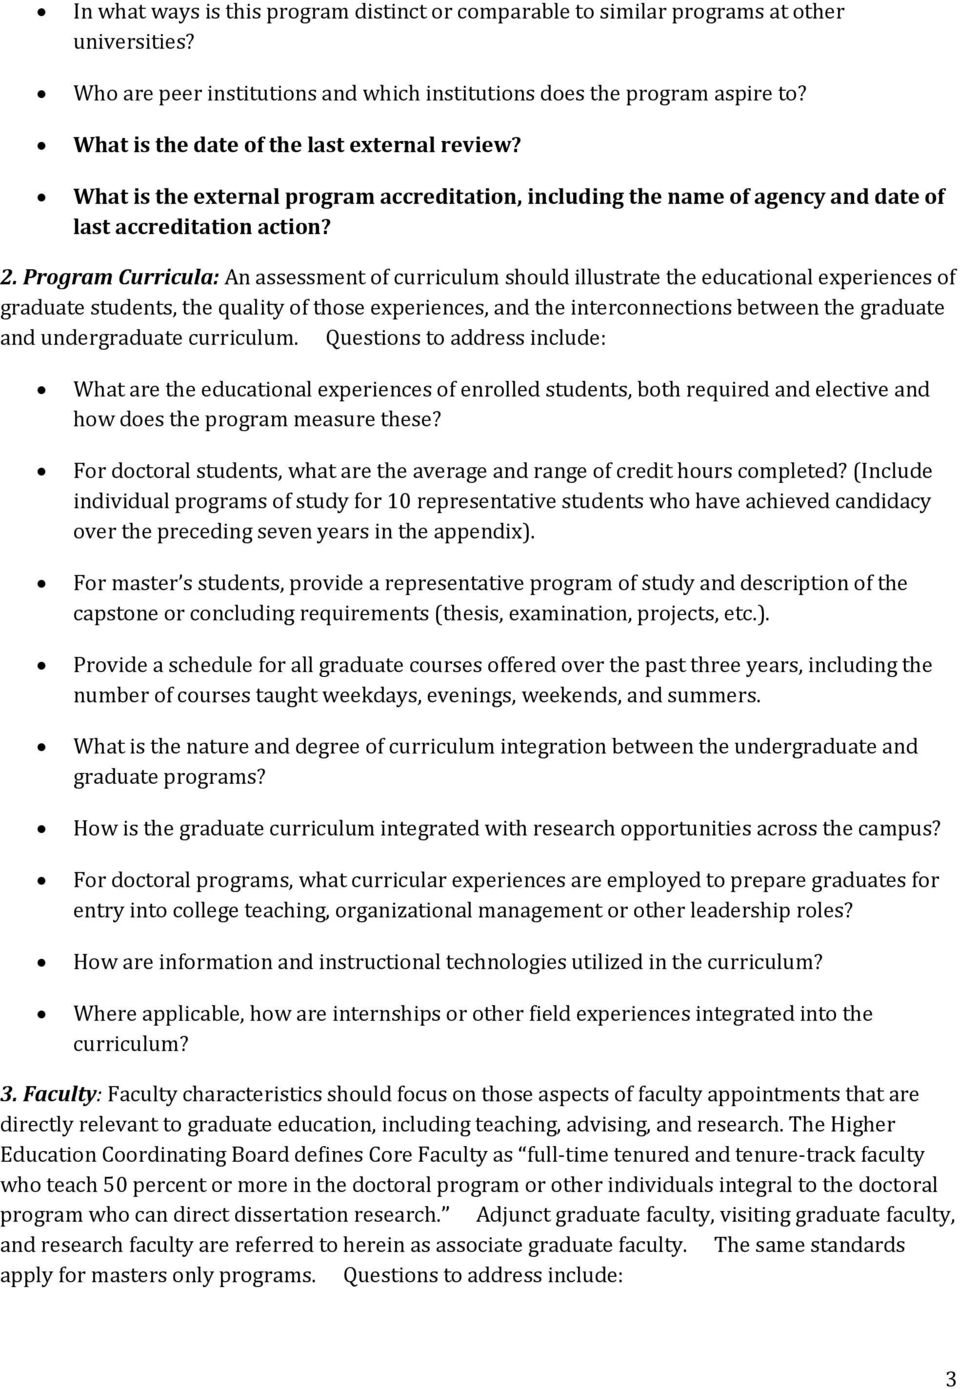 Program Curricula: An assessment of curriculum should illustrate the educational experiences of graduate students, the quality of those experiences, and the interconnections between the graduate and